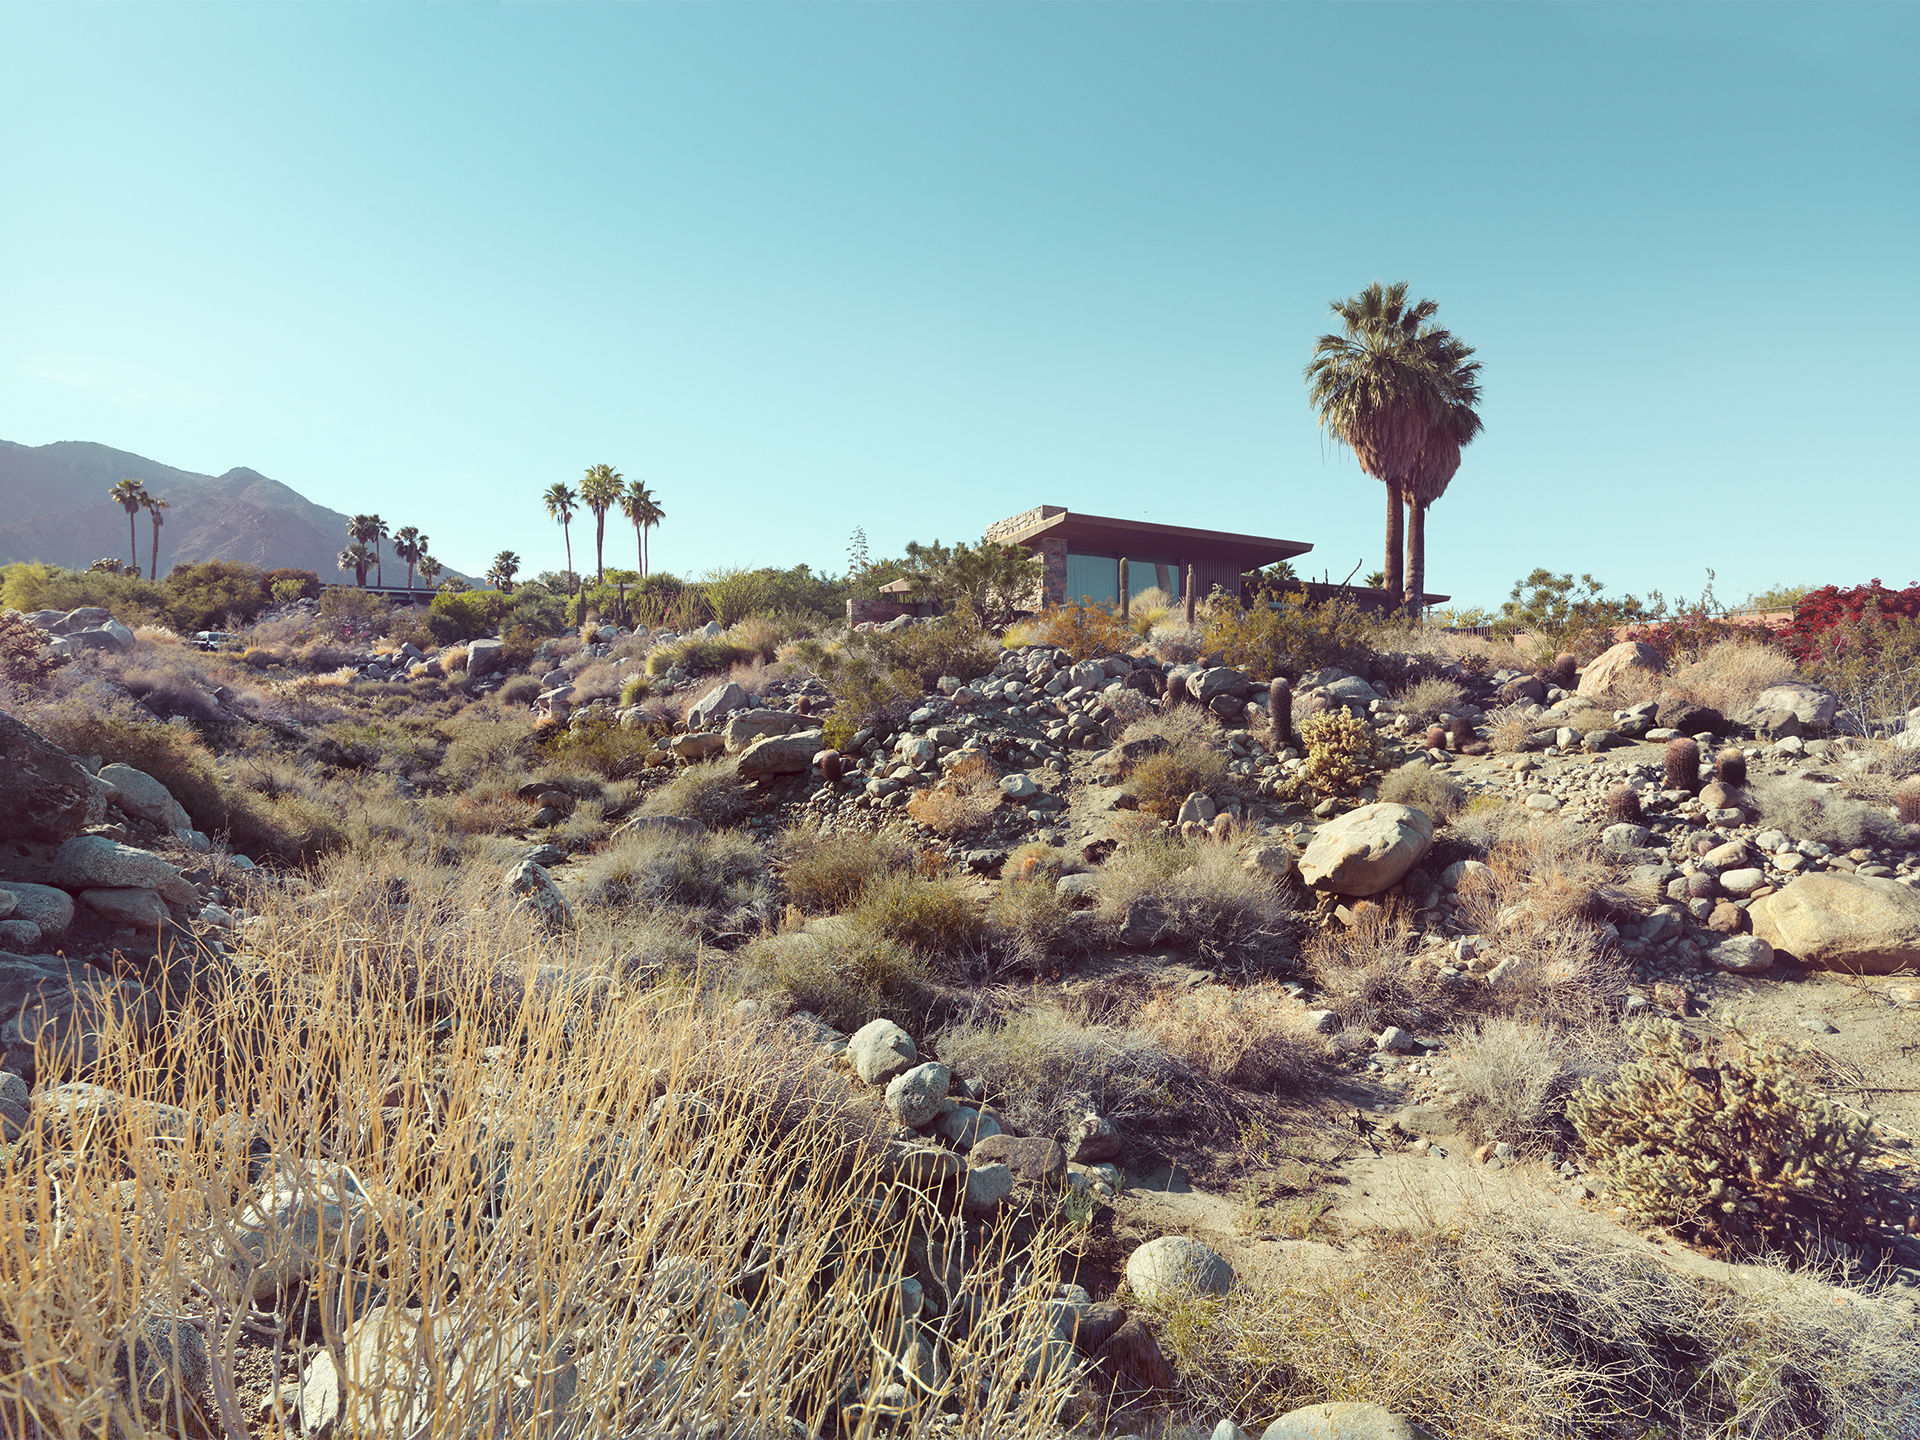 ANKE LUCKMANN: Palm Springs